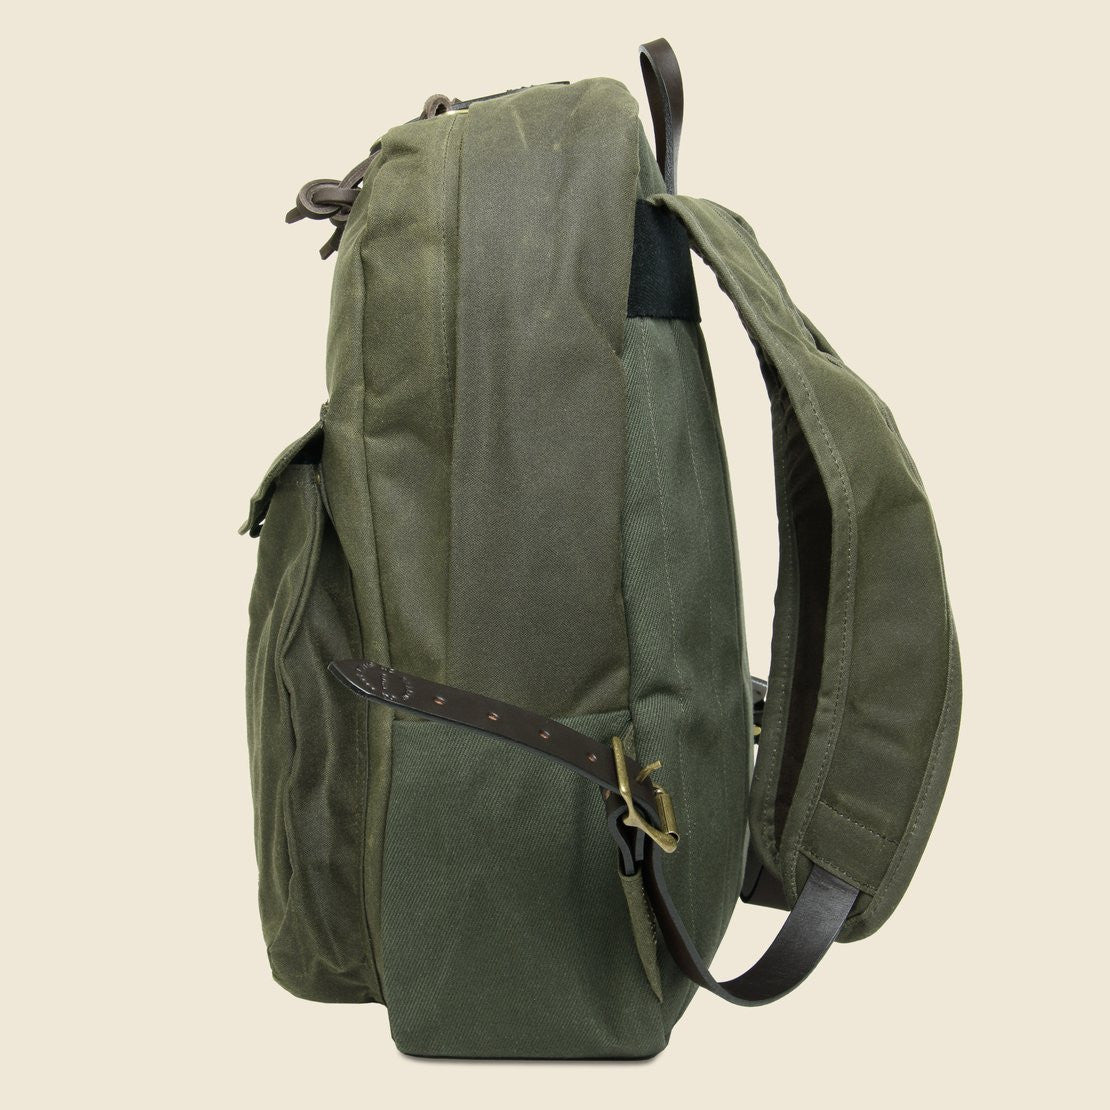 Journeyman Backpack - Otter Green - Filson - STAG Provisions - Accessories - Bags / Luggage